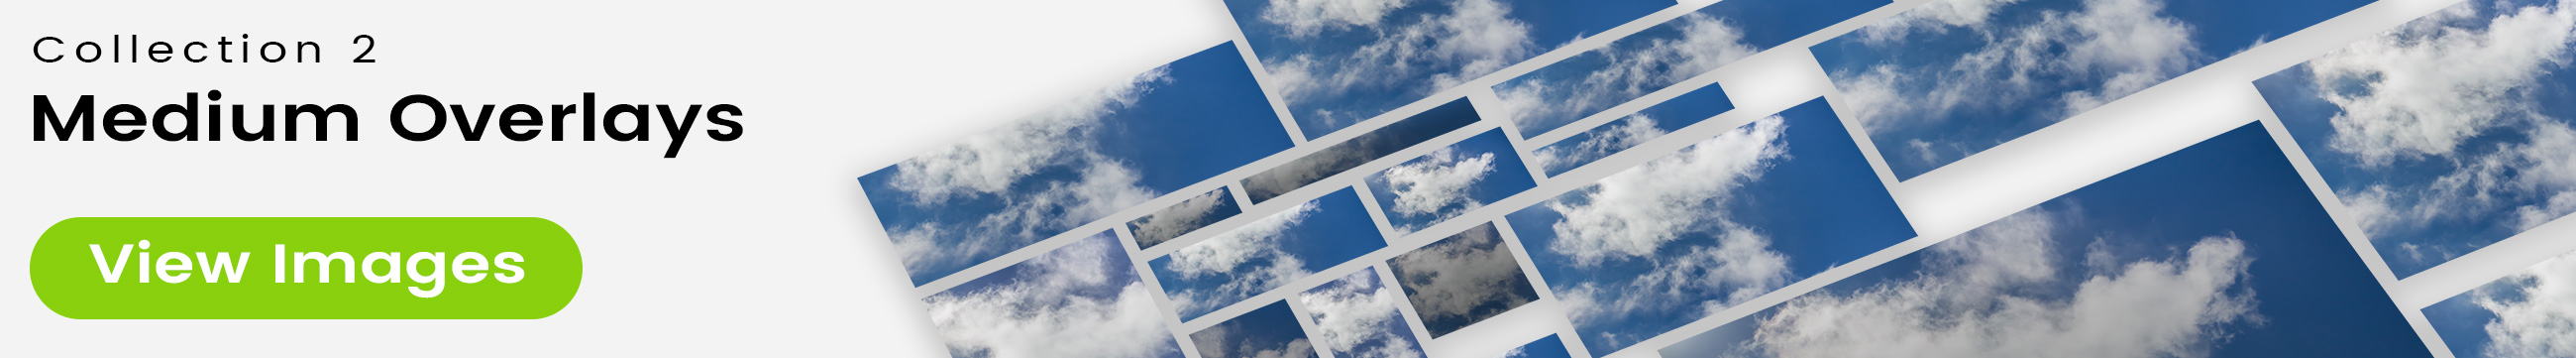 See 25 bonus images included with clouds stock image 9474. Collection 2 of 4 features a medium-dark overlay design.